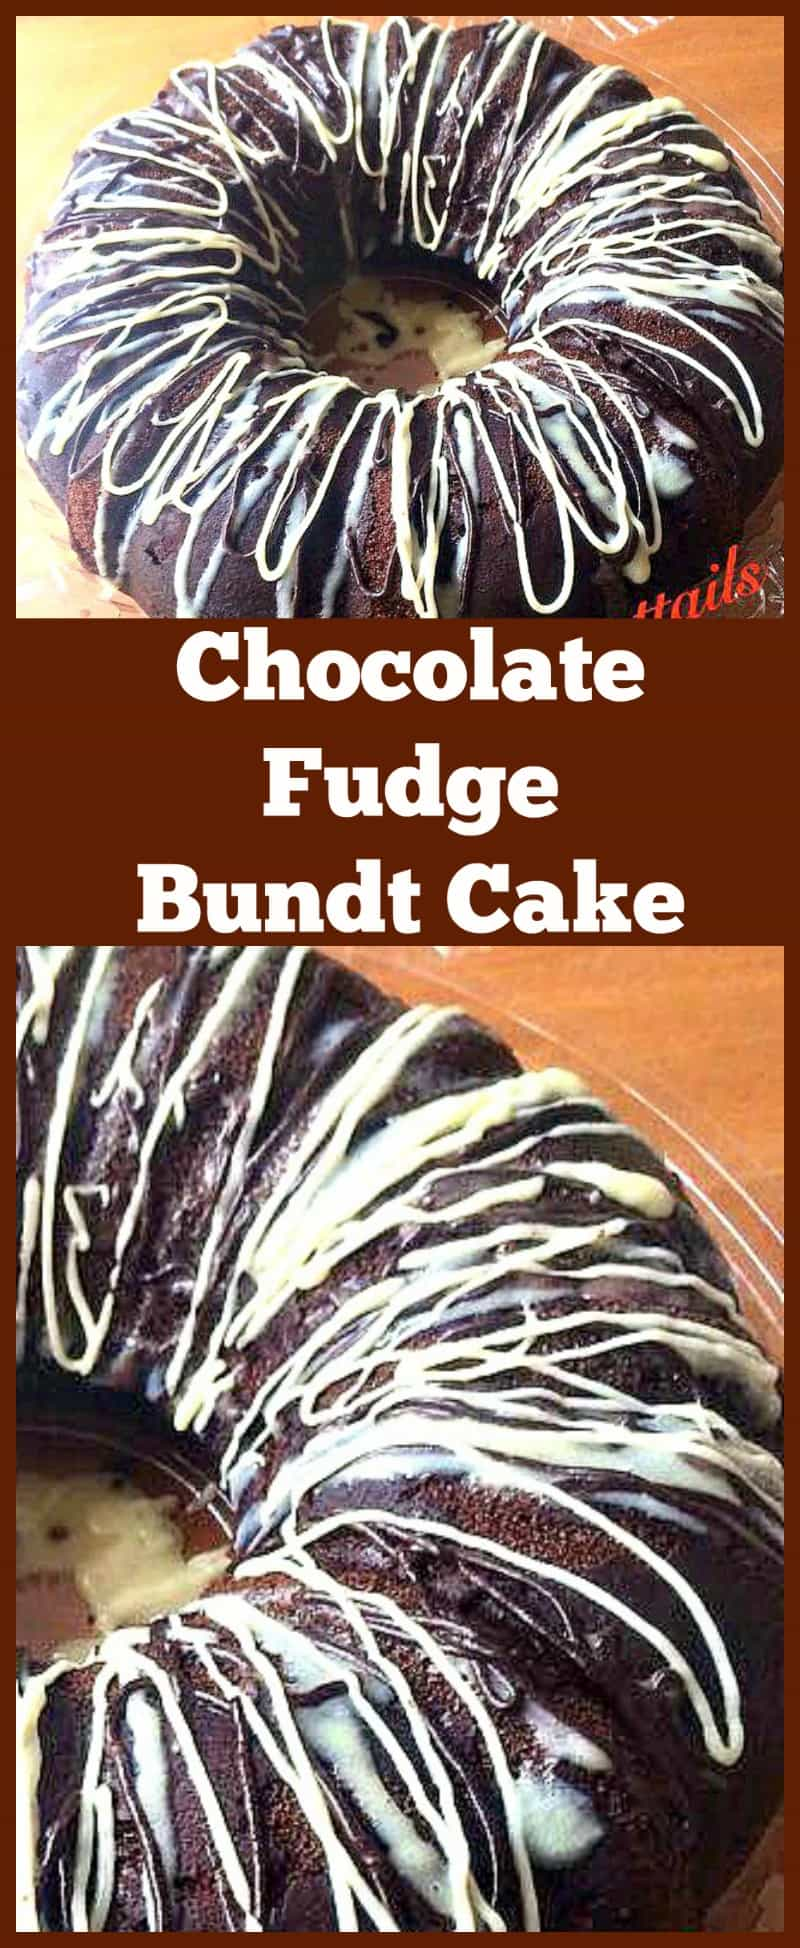 Chocolate Fudge Bundt Cake. A very easy recipe for a super moist and soft cake with a yummy Chocolate ganache topping. This is so good! #cake #chocolate